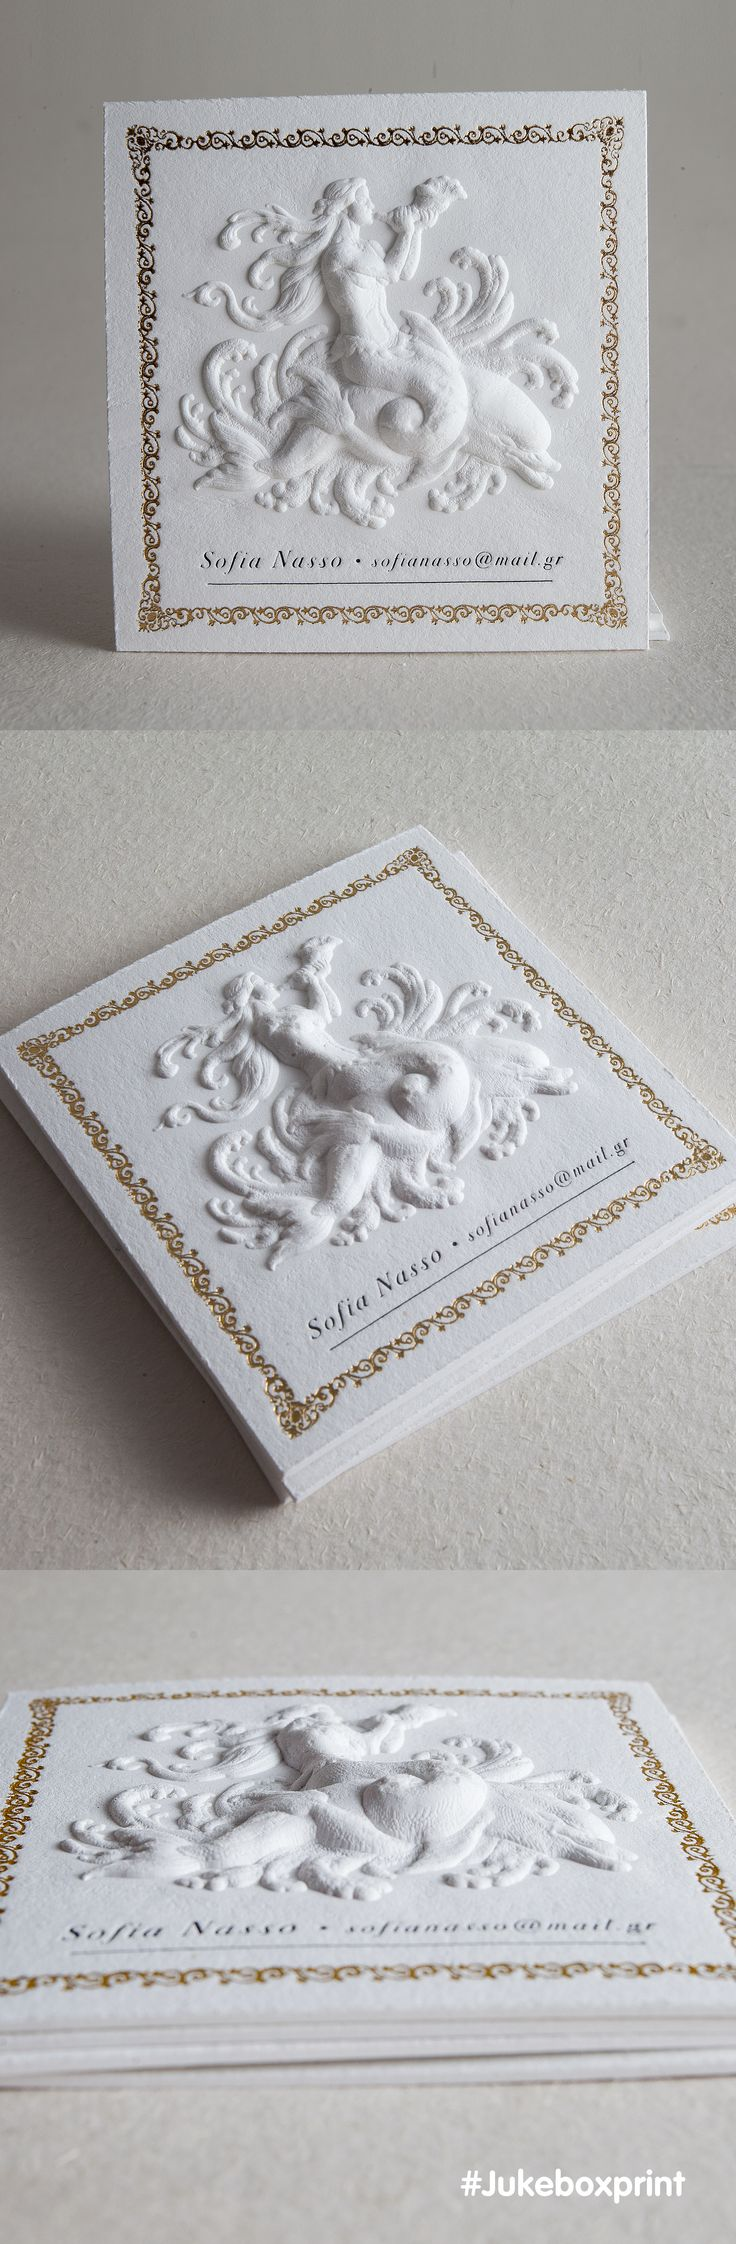 An extraordinary example of 3D Embossing pushed to the maximum level with depth and detail. Produced on 40pt Cotton with added elements of Letterpress and Gold Foiling. Printed by #Jukeboxprint